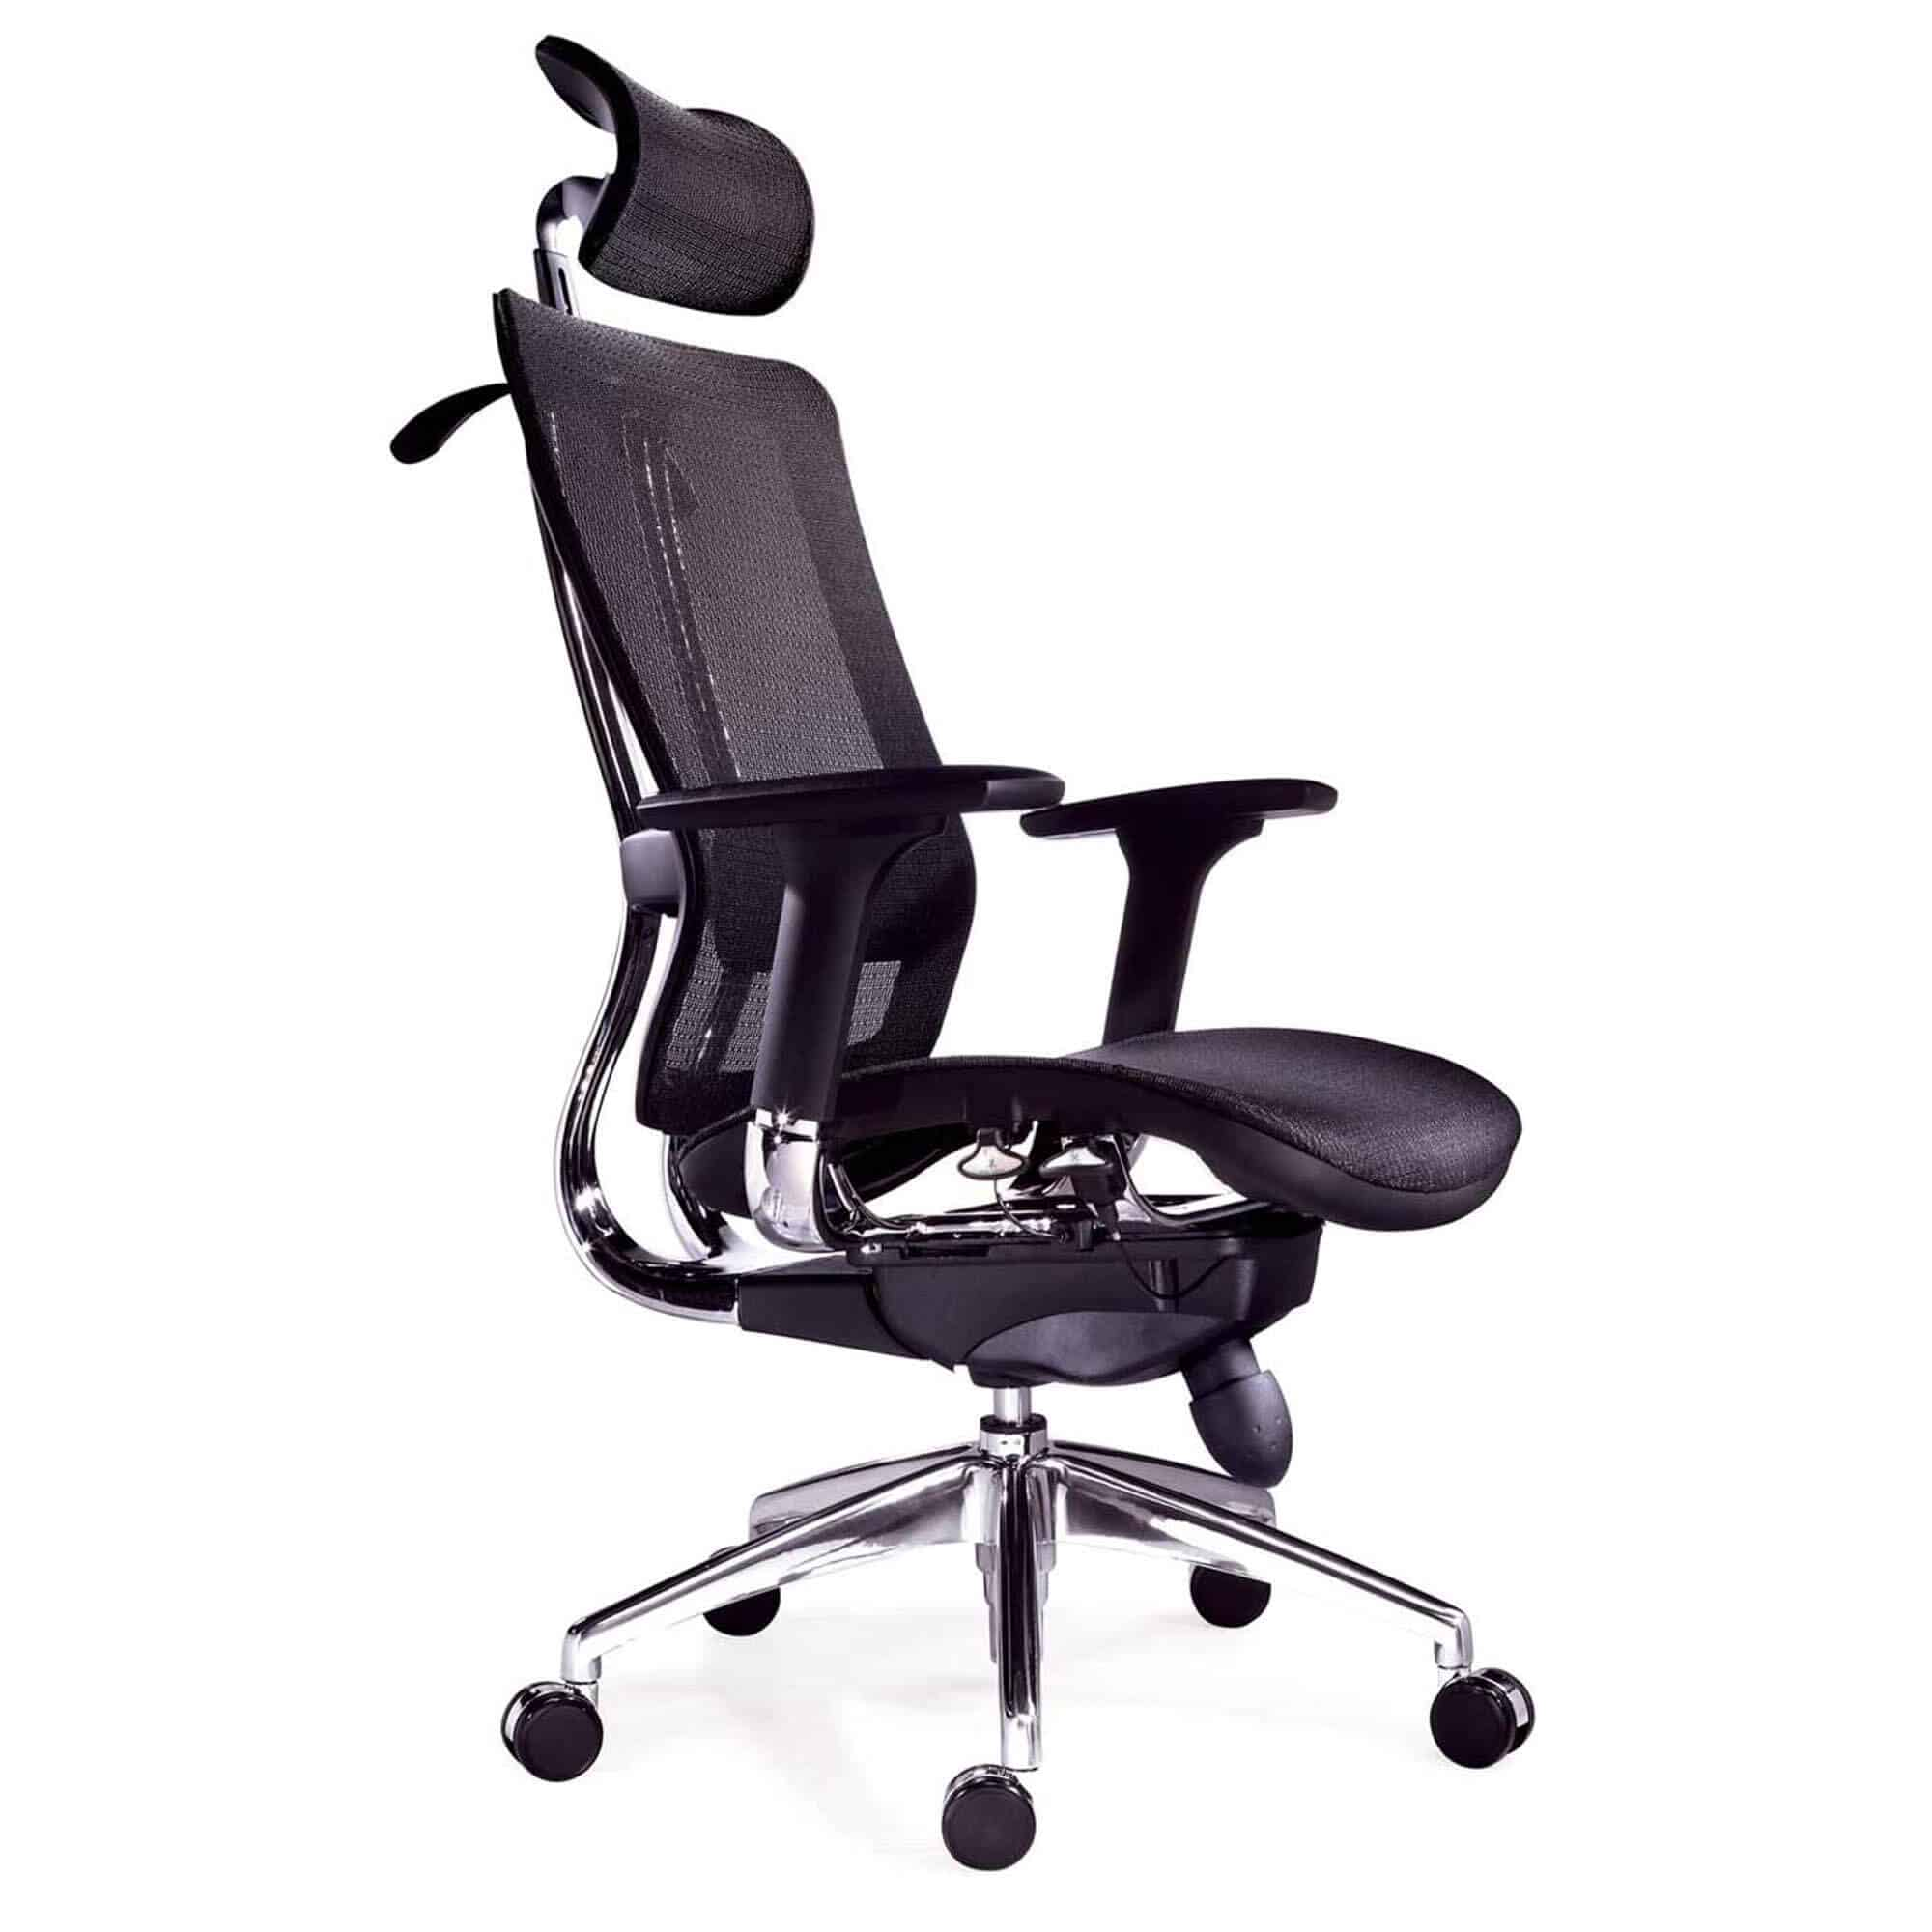 Most comfortable office chair - What To Look For In An Office Chair Seven Things To Consider